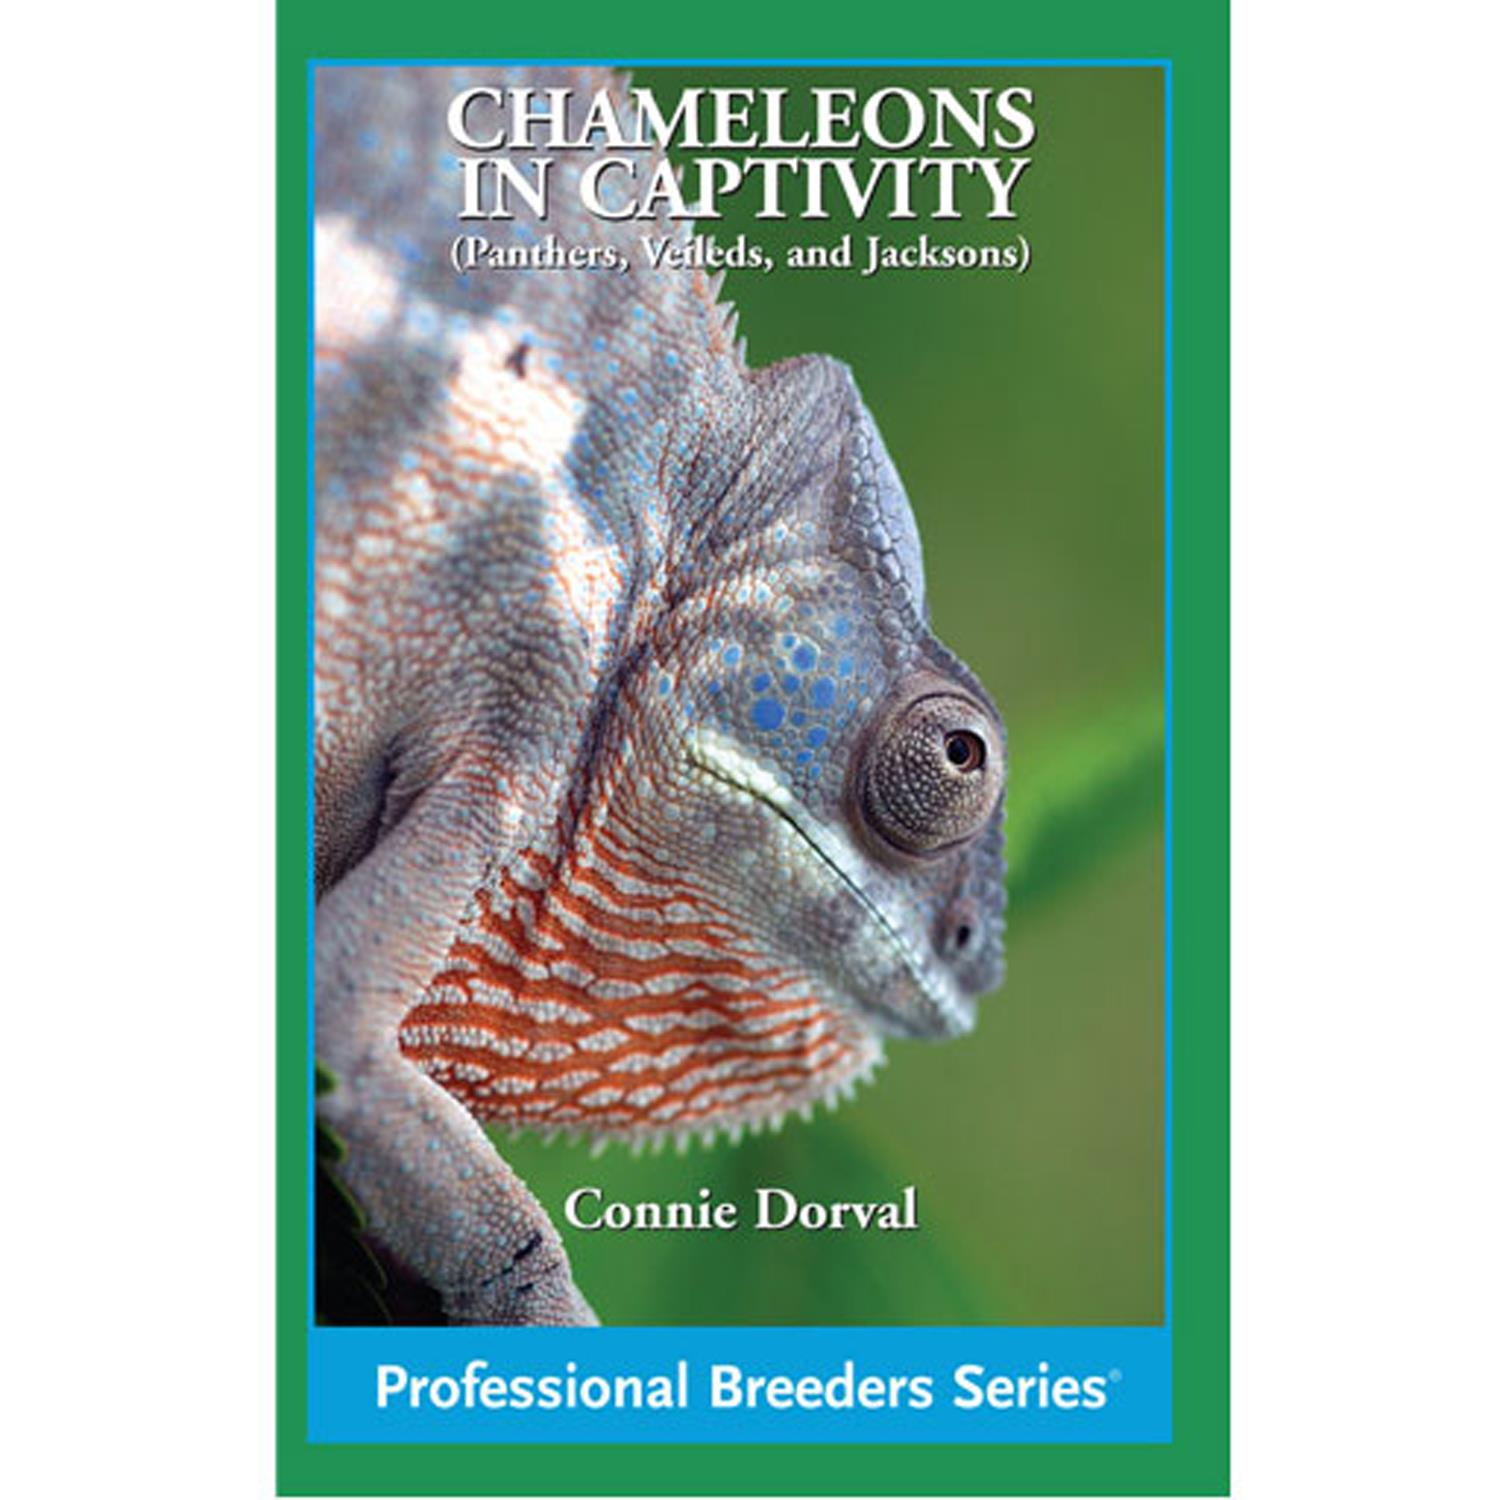 greg maxwell the more complete chondro epub download